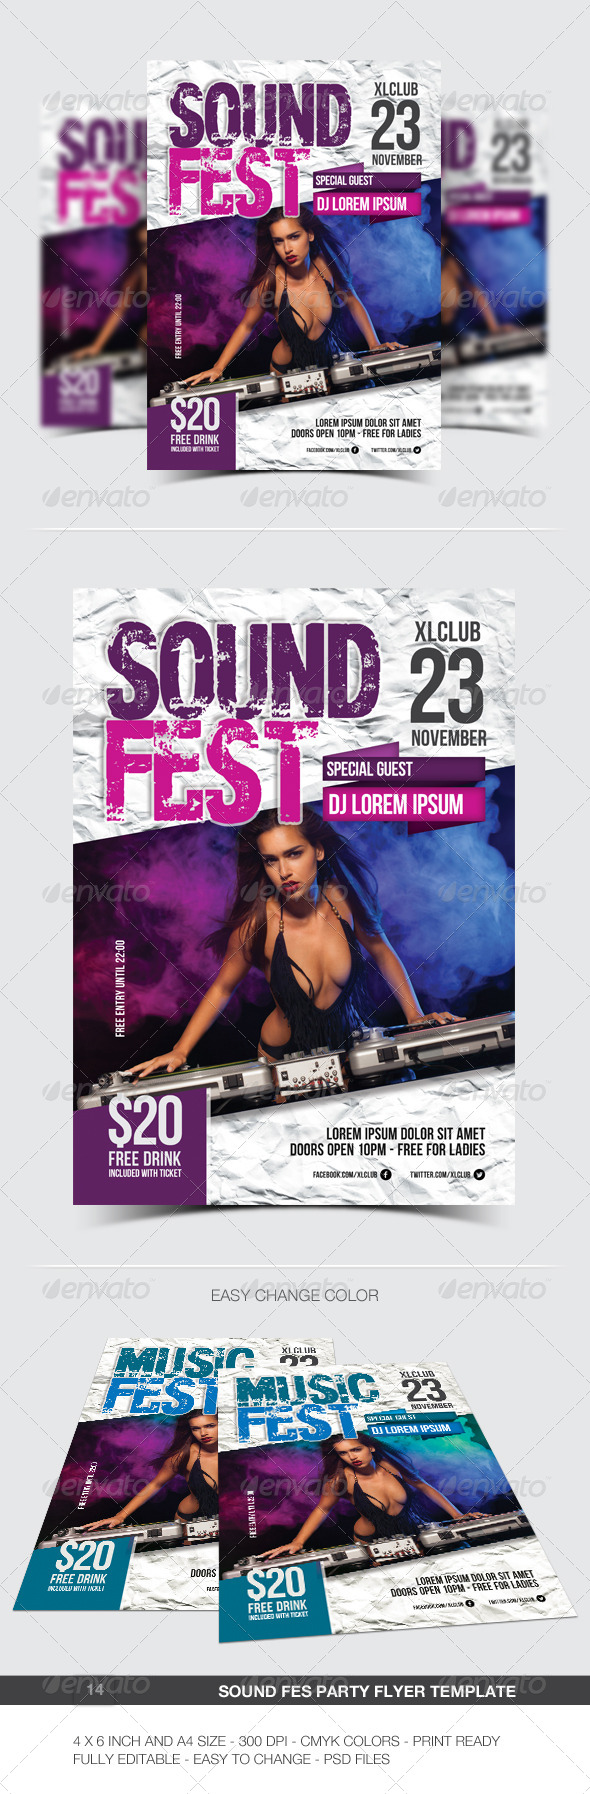 Sound Fest Party Flyer / Poster - 14 - Clubs & Parties Events